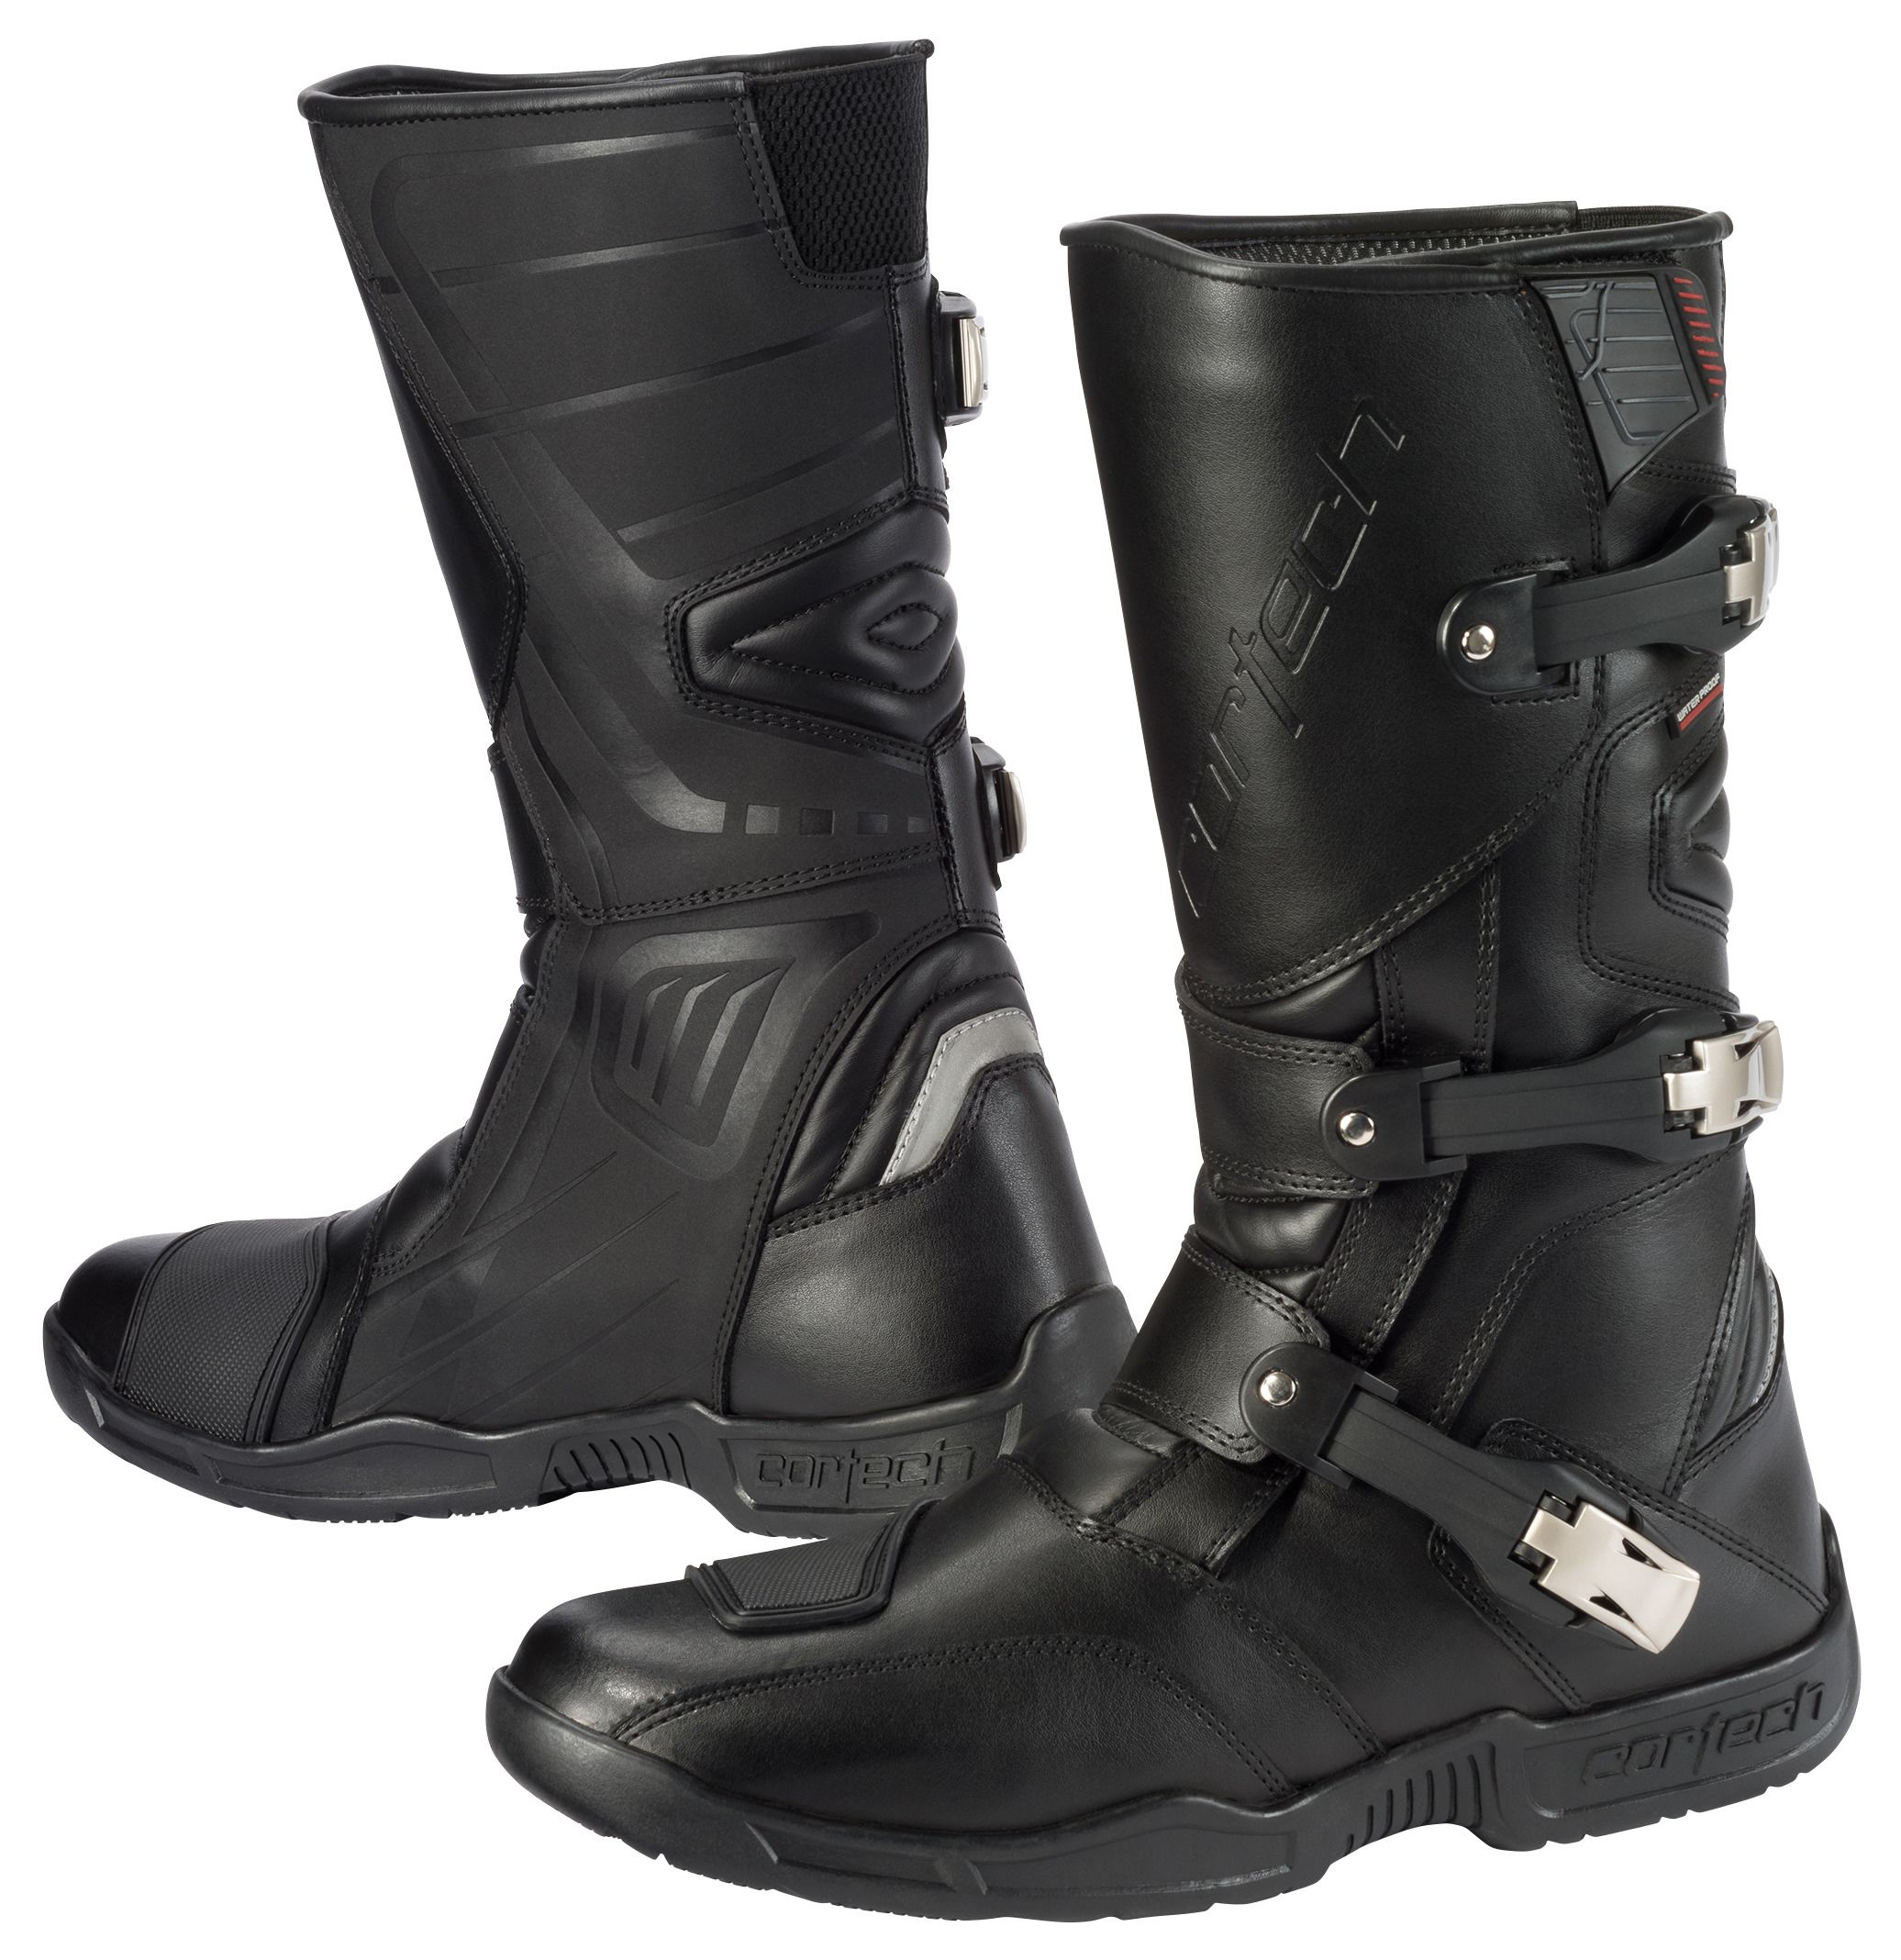 Cortech Accelerator Xc Boots 8 20 30 00 Off